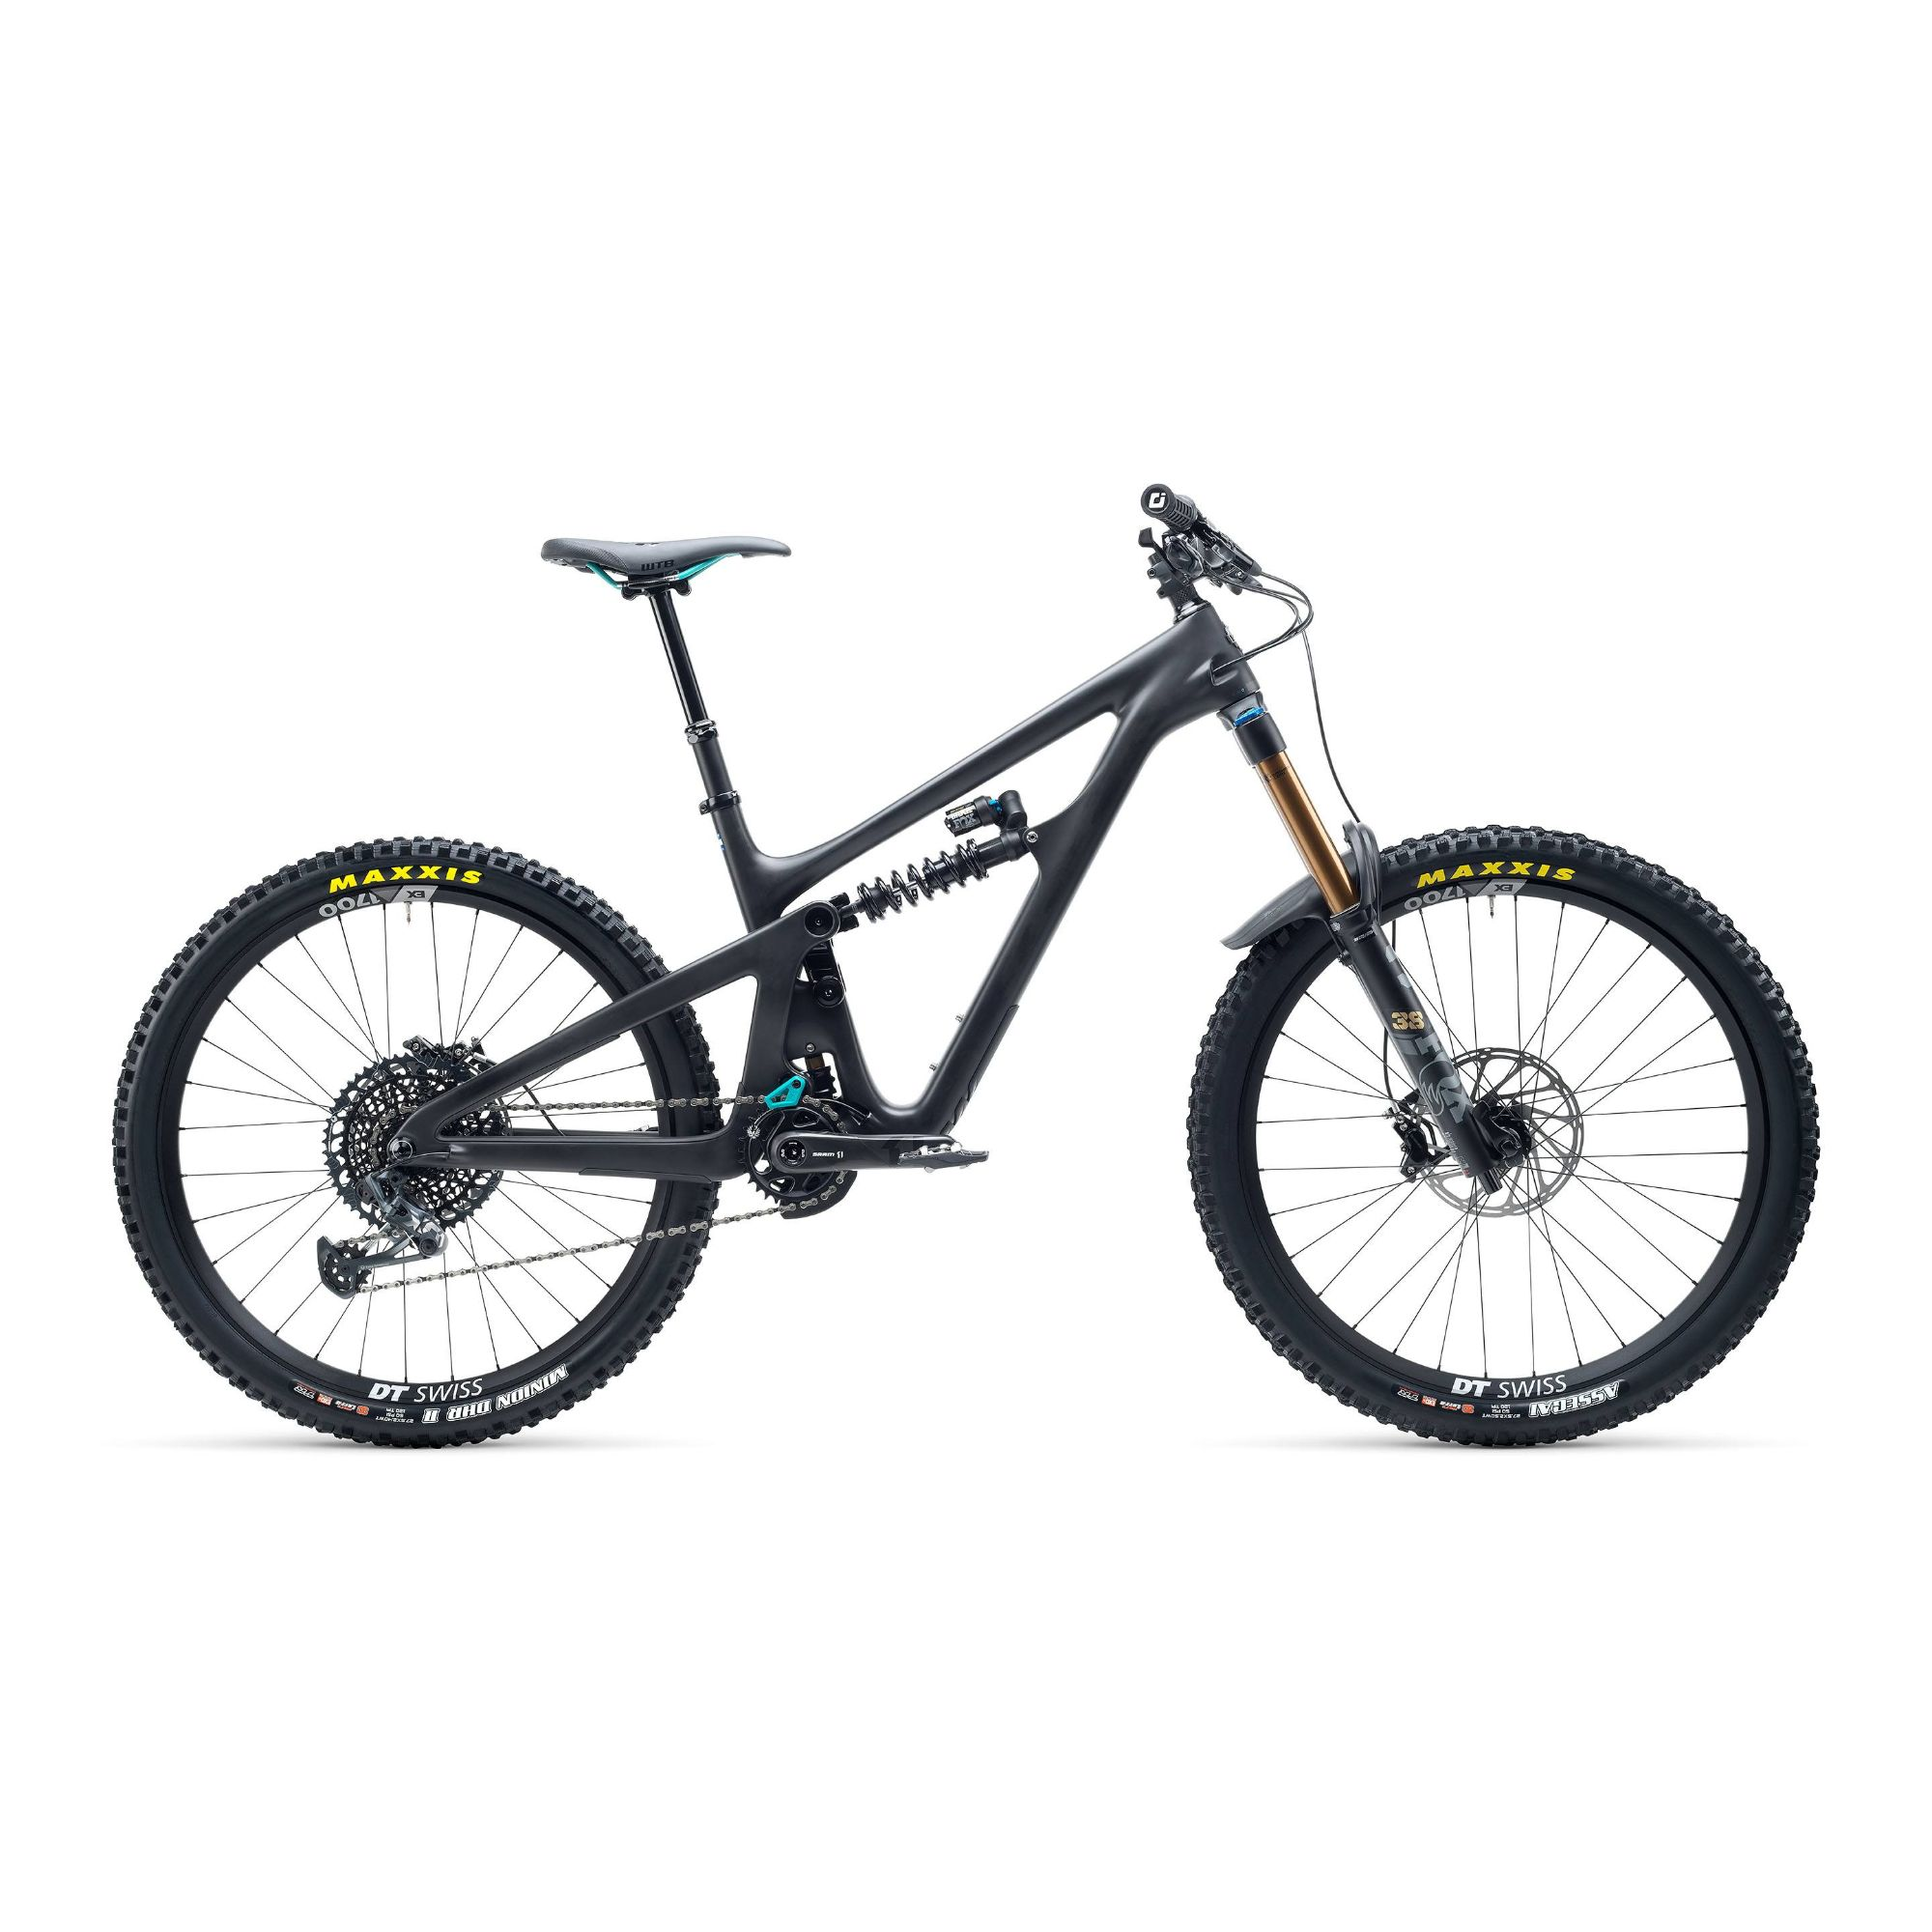 Yeti SB165 T Series T2 27.5 GX Carbon Mountain Bike 2021 RAW / GREY